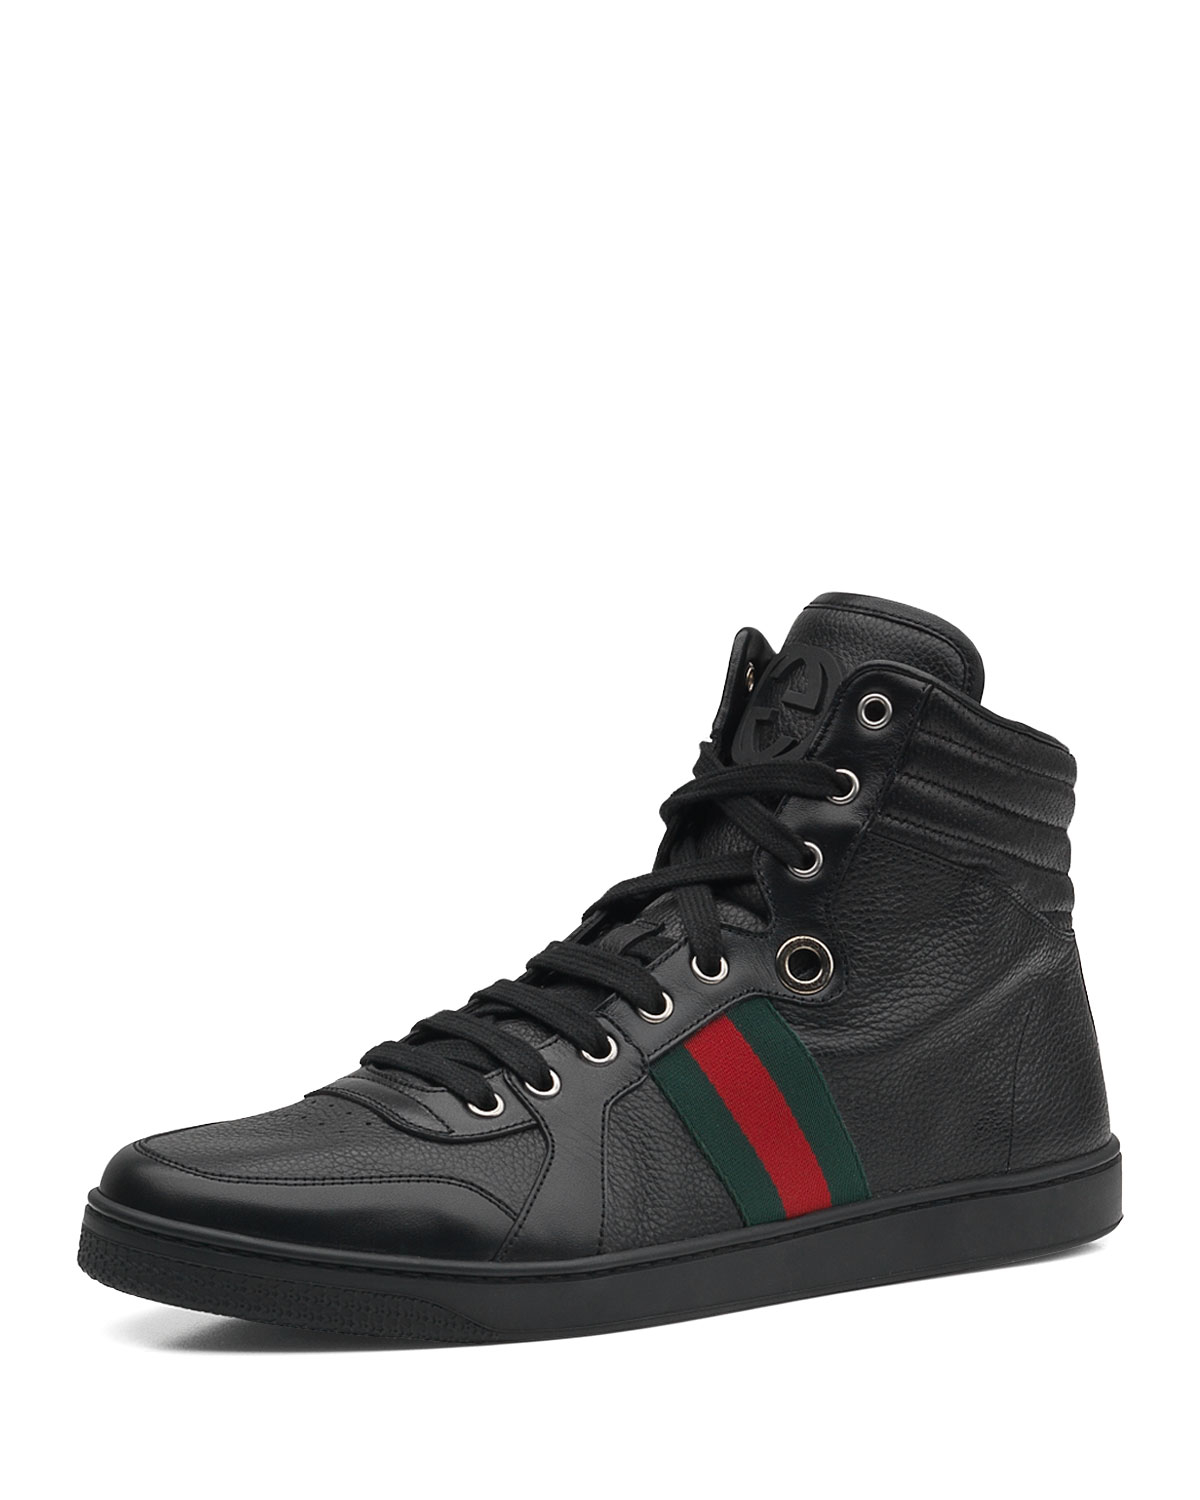 gucci leather hightop sneaker in black for men lyst